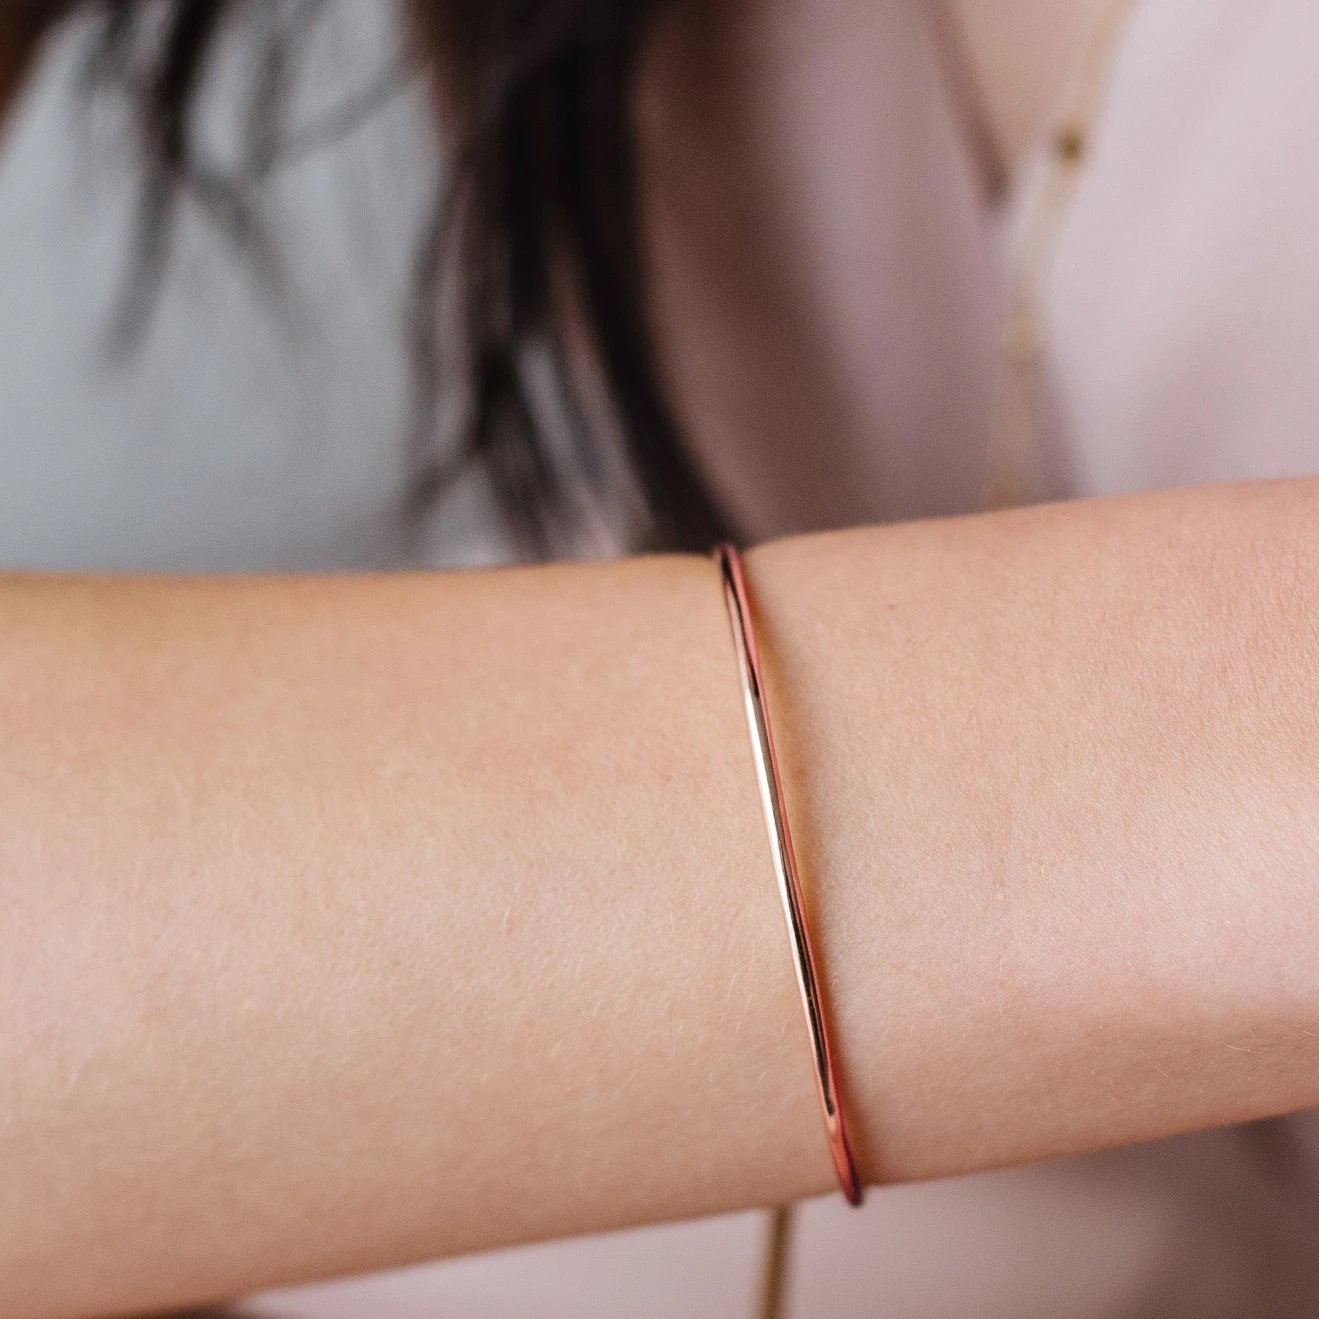 POISE ADJUSTABLE BRACELET - ROSE GOLD - SO PRETTY CARA COTTER